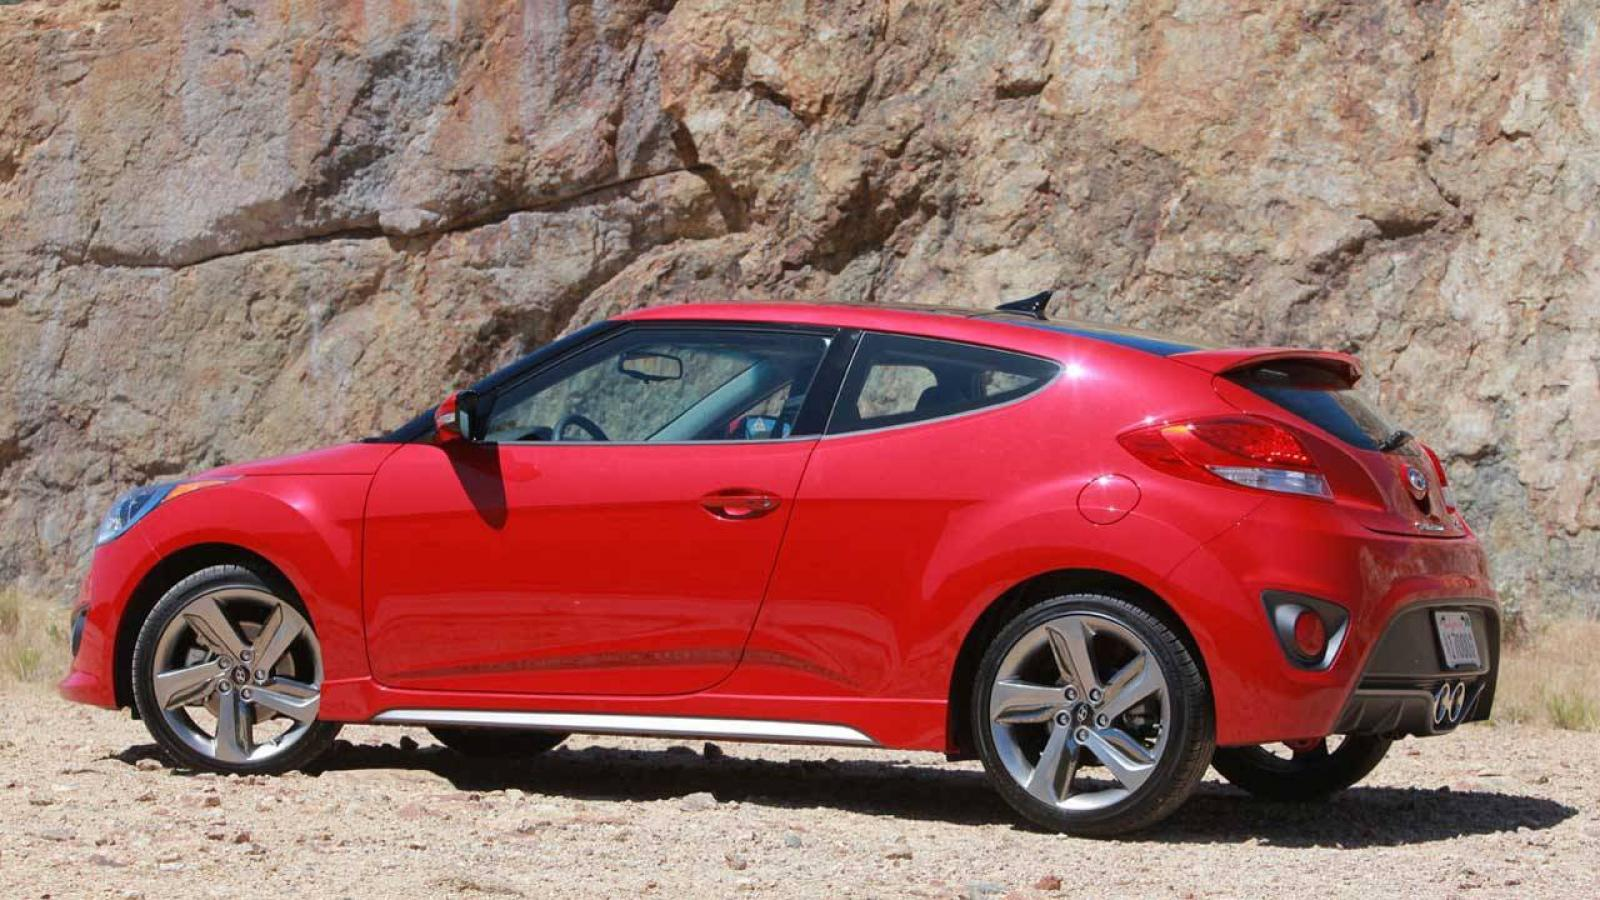 2013 Hyundai Veloster Information And Photos Zombiedrive